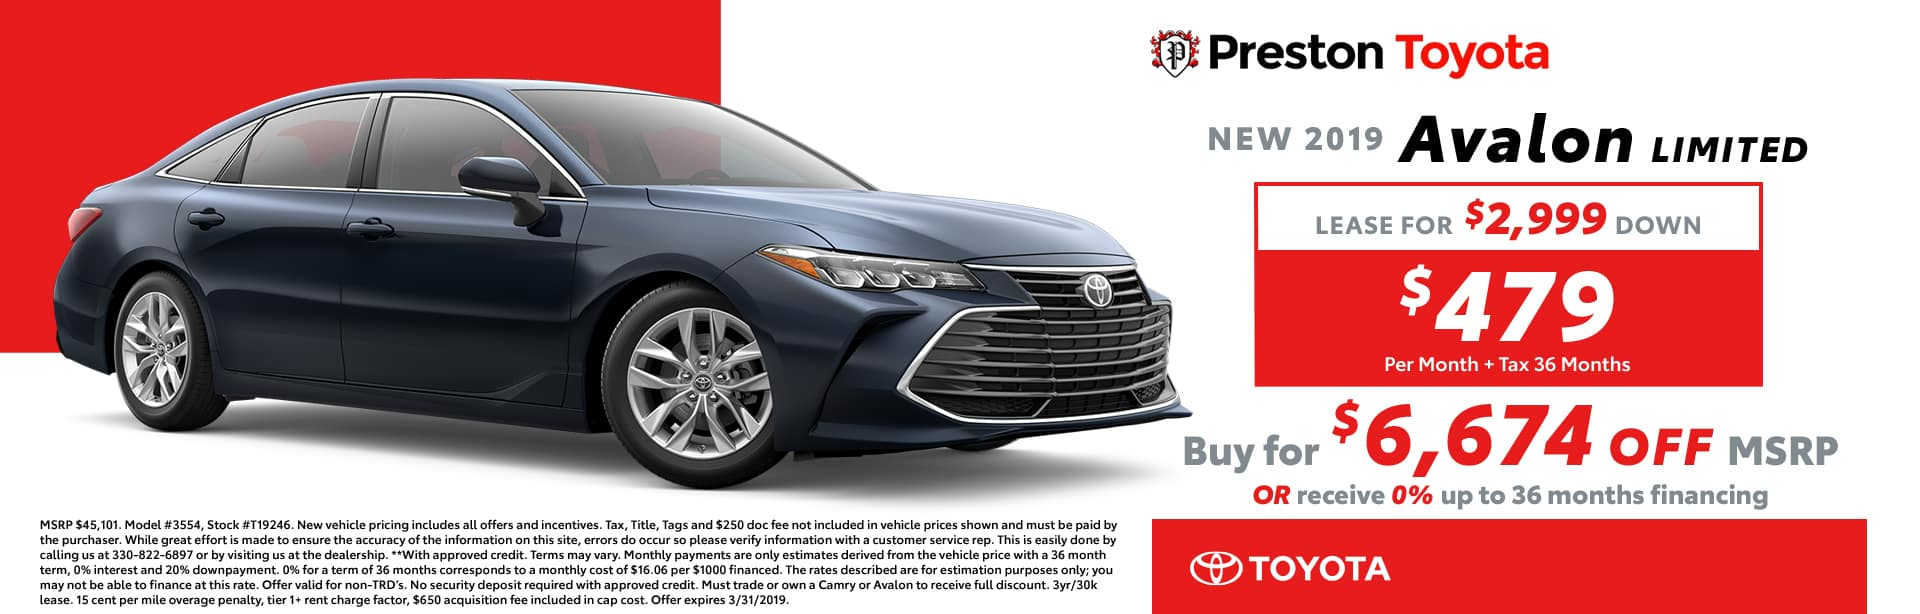 March Special on the 2019 Toyota Avalon